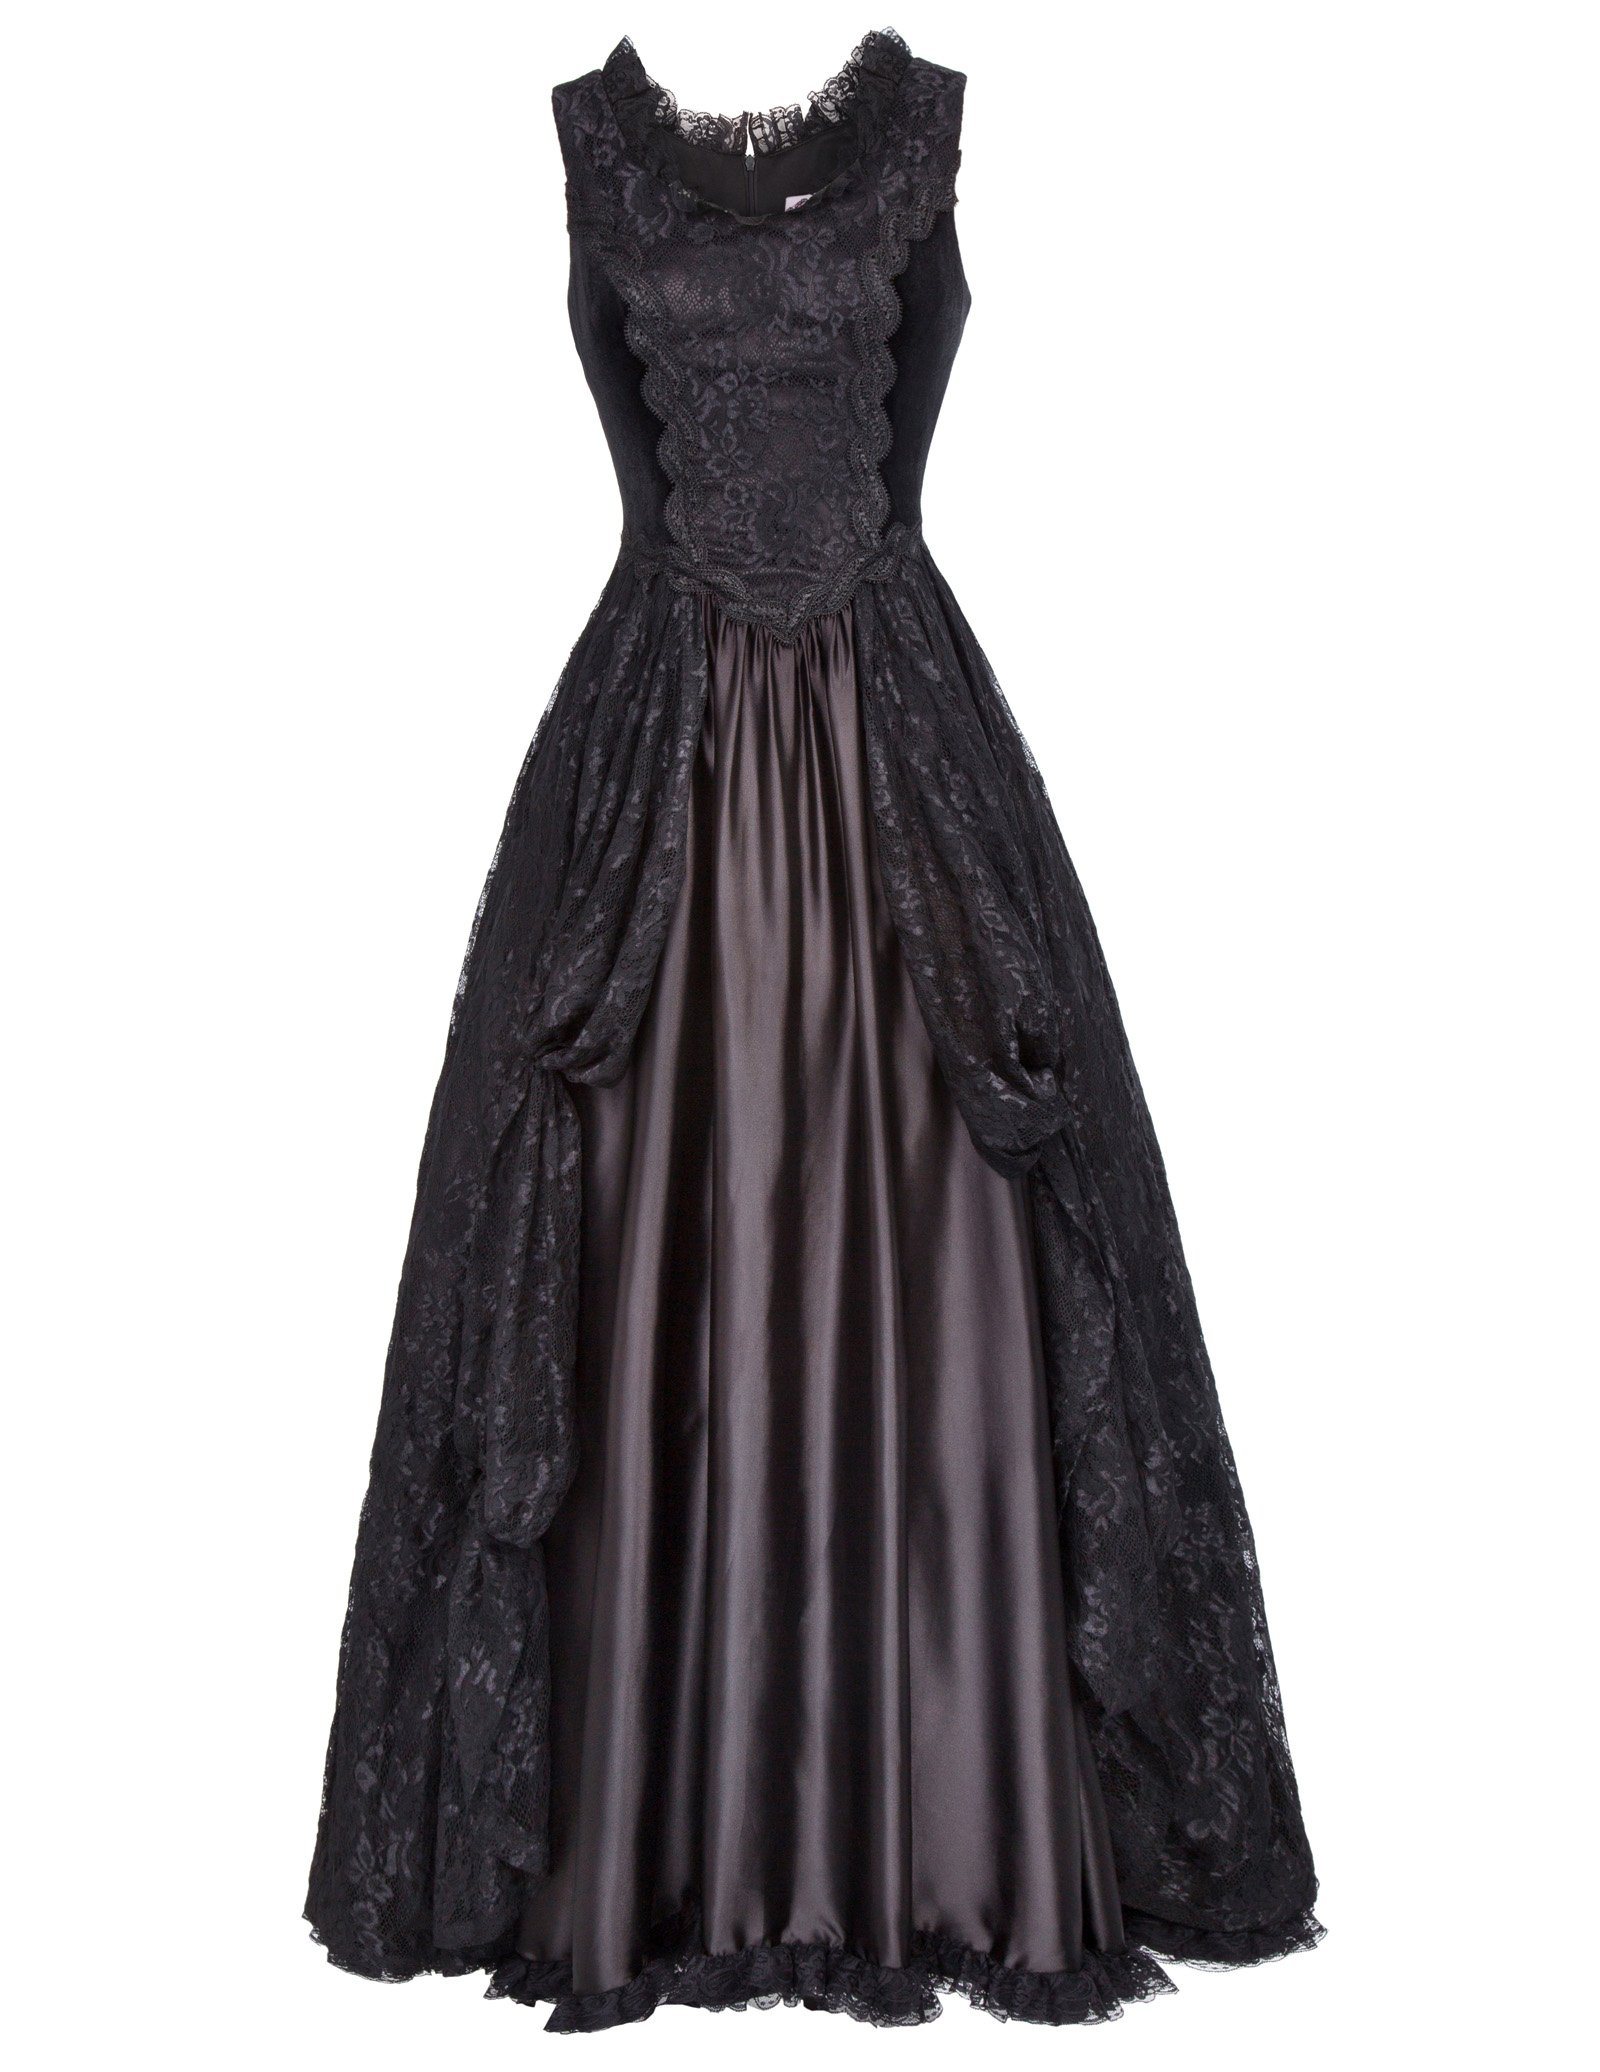 Women Victorian Gothic Lace Vintage Style Dress High Waist Sleeveless XL Black by Belle Poque